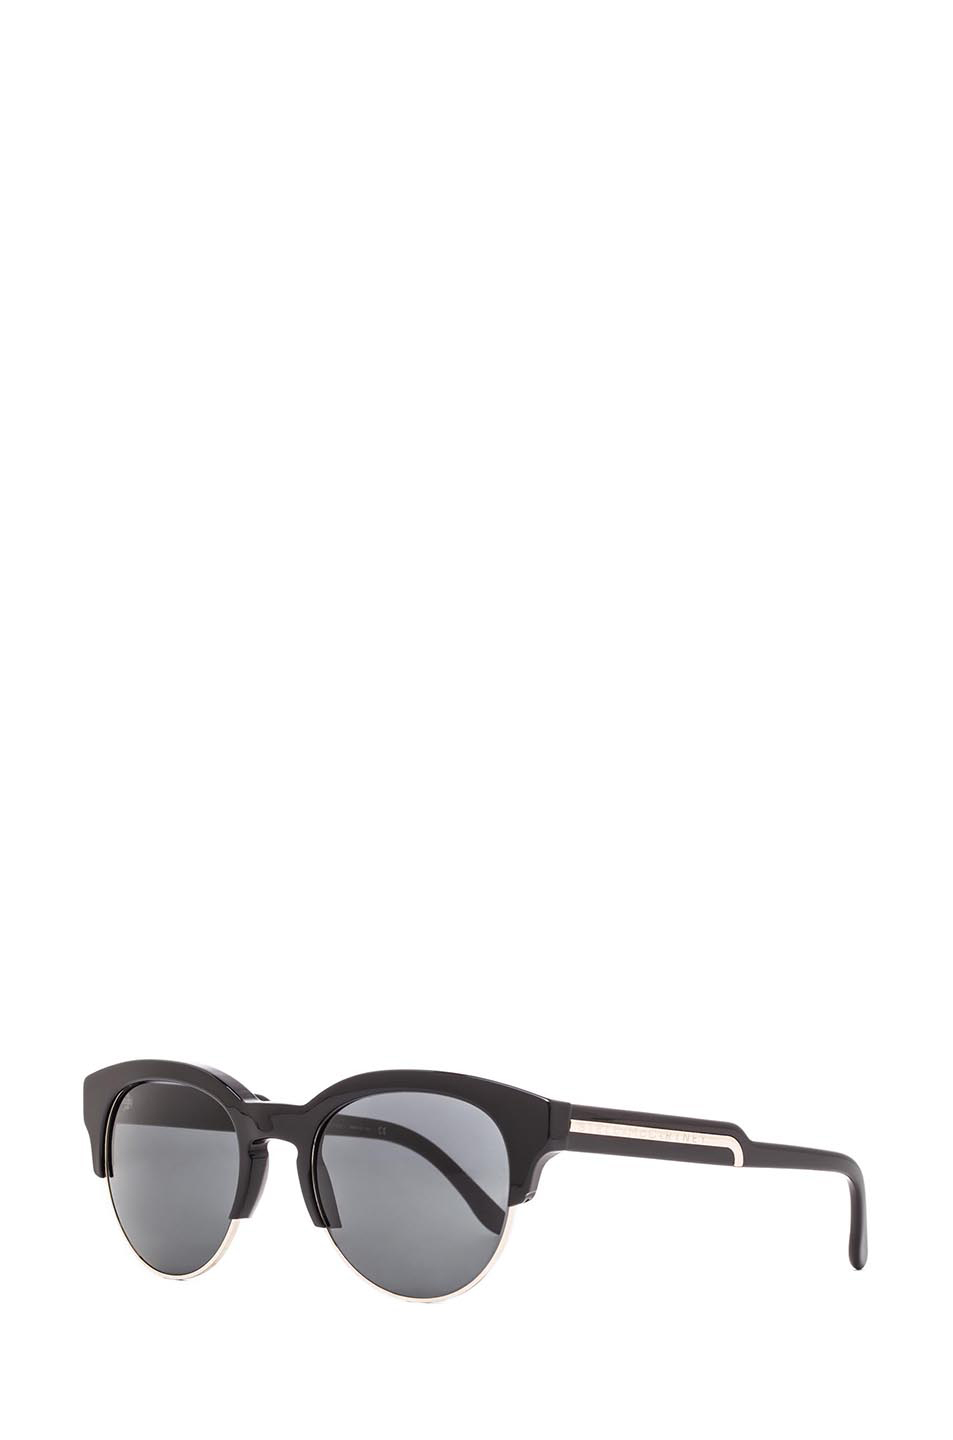 Stella McCartney | Sunglasses in Black